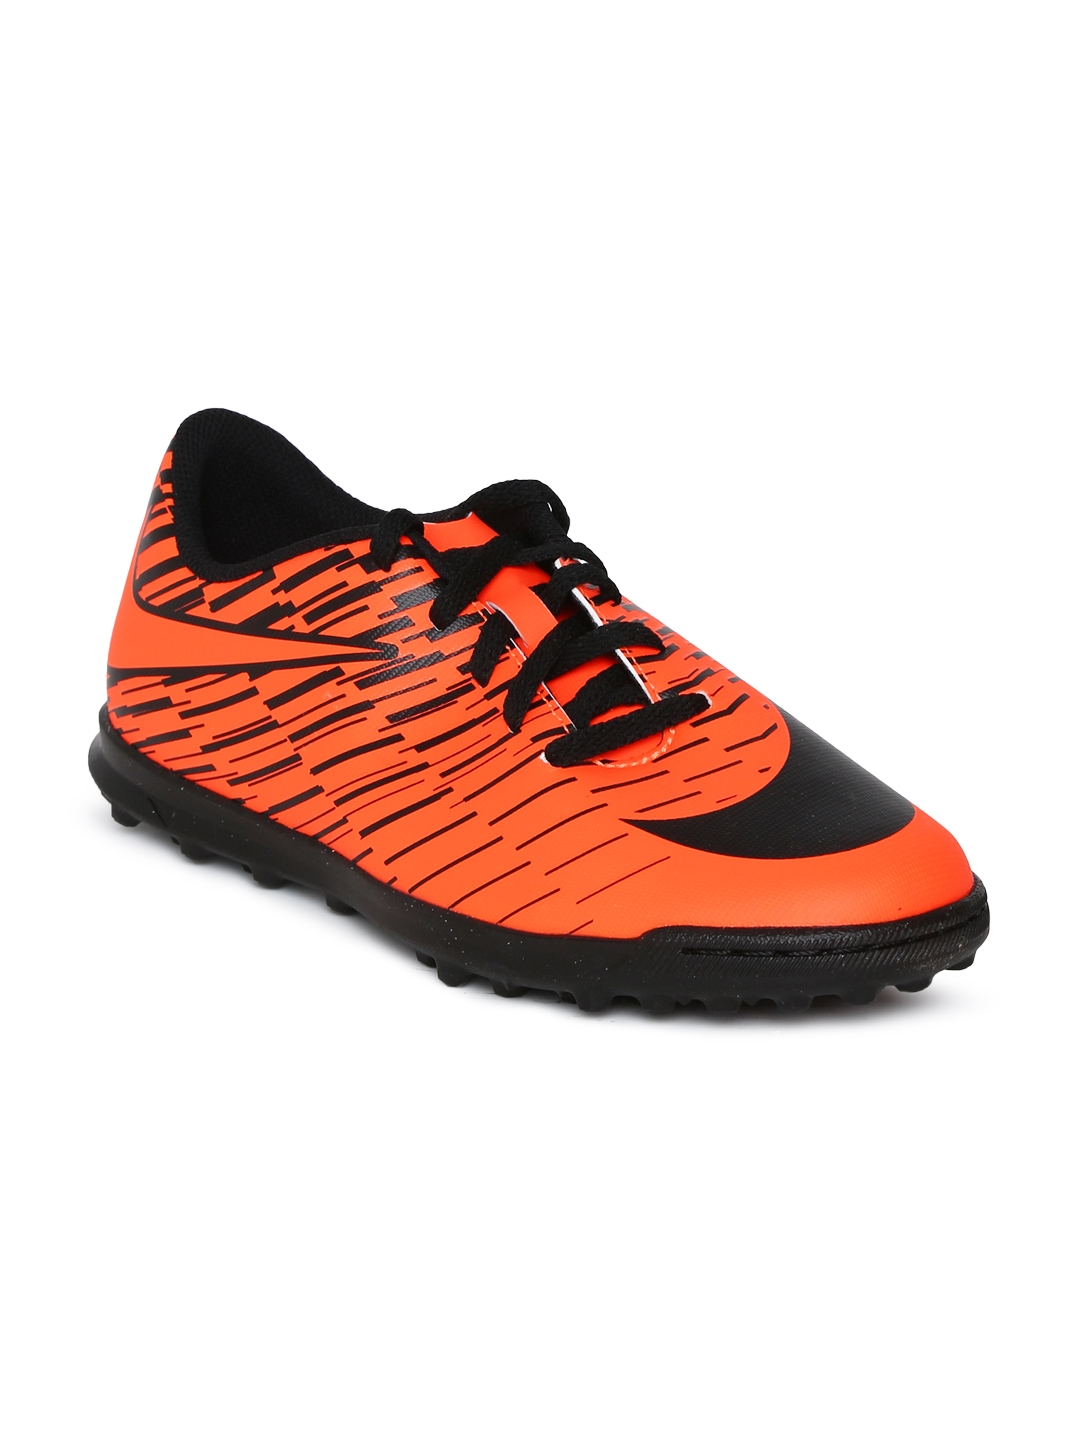 buy online 48ecd 01cb0 Nike Unisex Orange   Black JR BRAVATA II TF Football Shoes